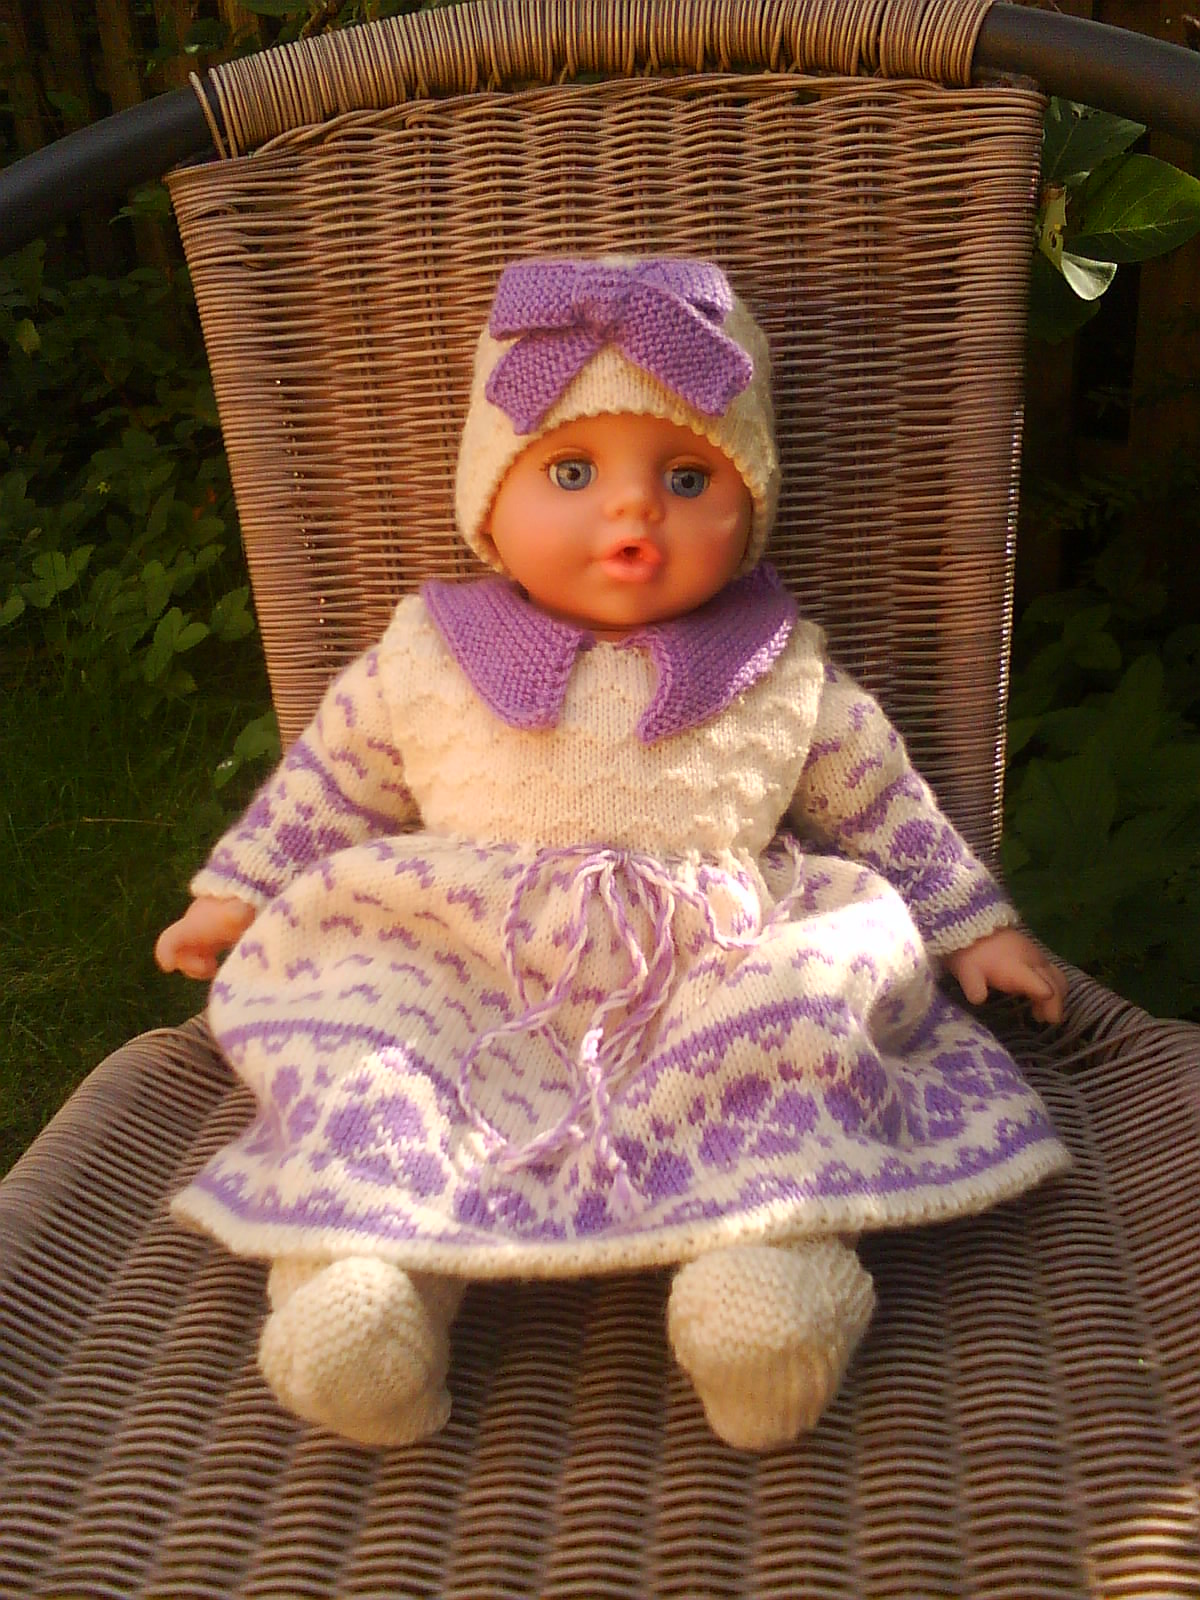 Knitting Clothes For Dolls : Things i love to make knitting doll clothes